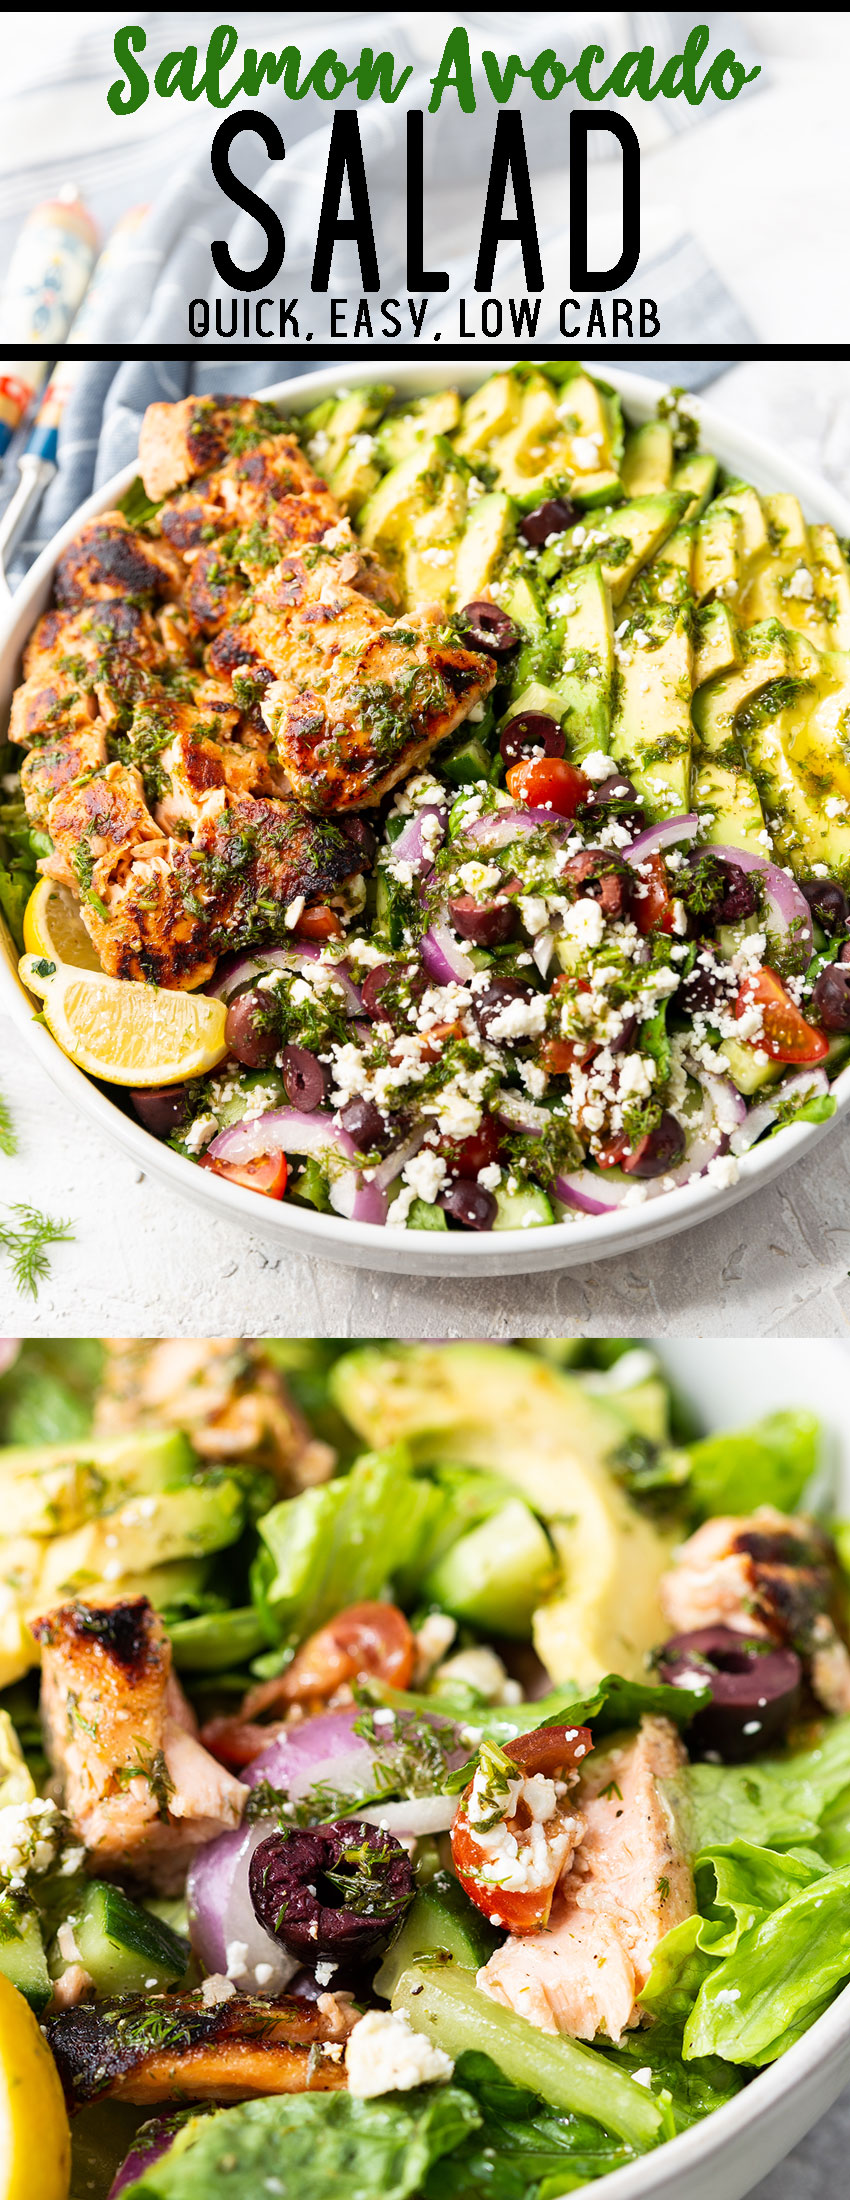 Salmon Avocado salad: A low carb salad packed with flavor. With seared salmon. sliced avocado, and a mediterranean mix of olives, tomatoes, and cucumbers, this is a salad that is perfection.